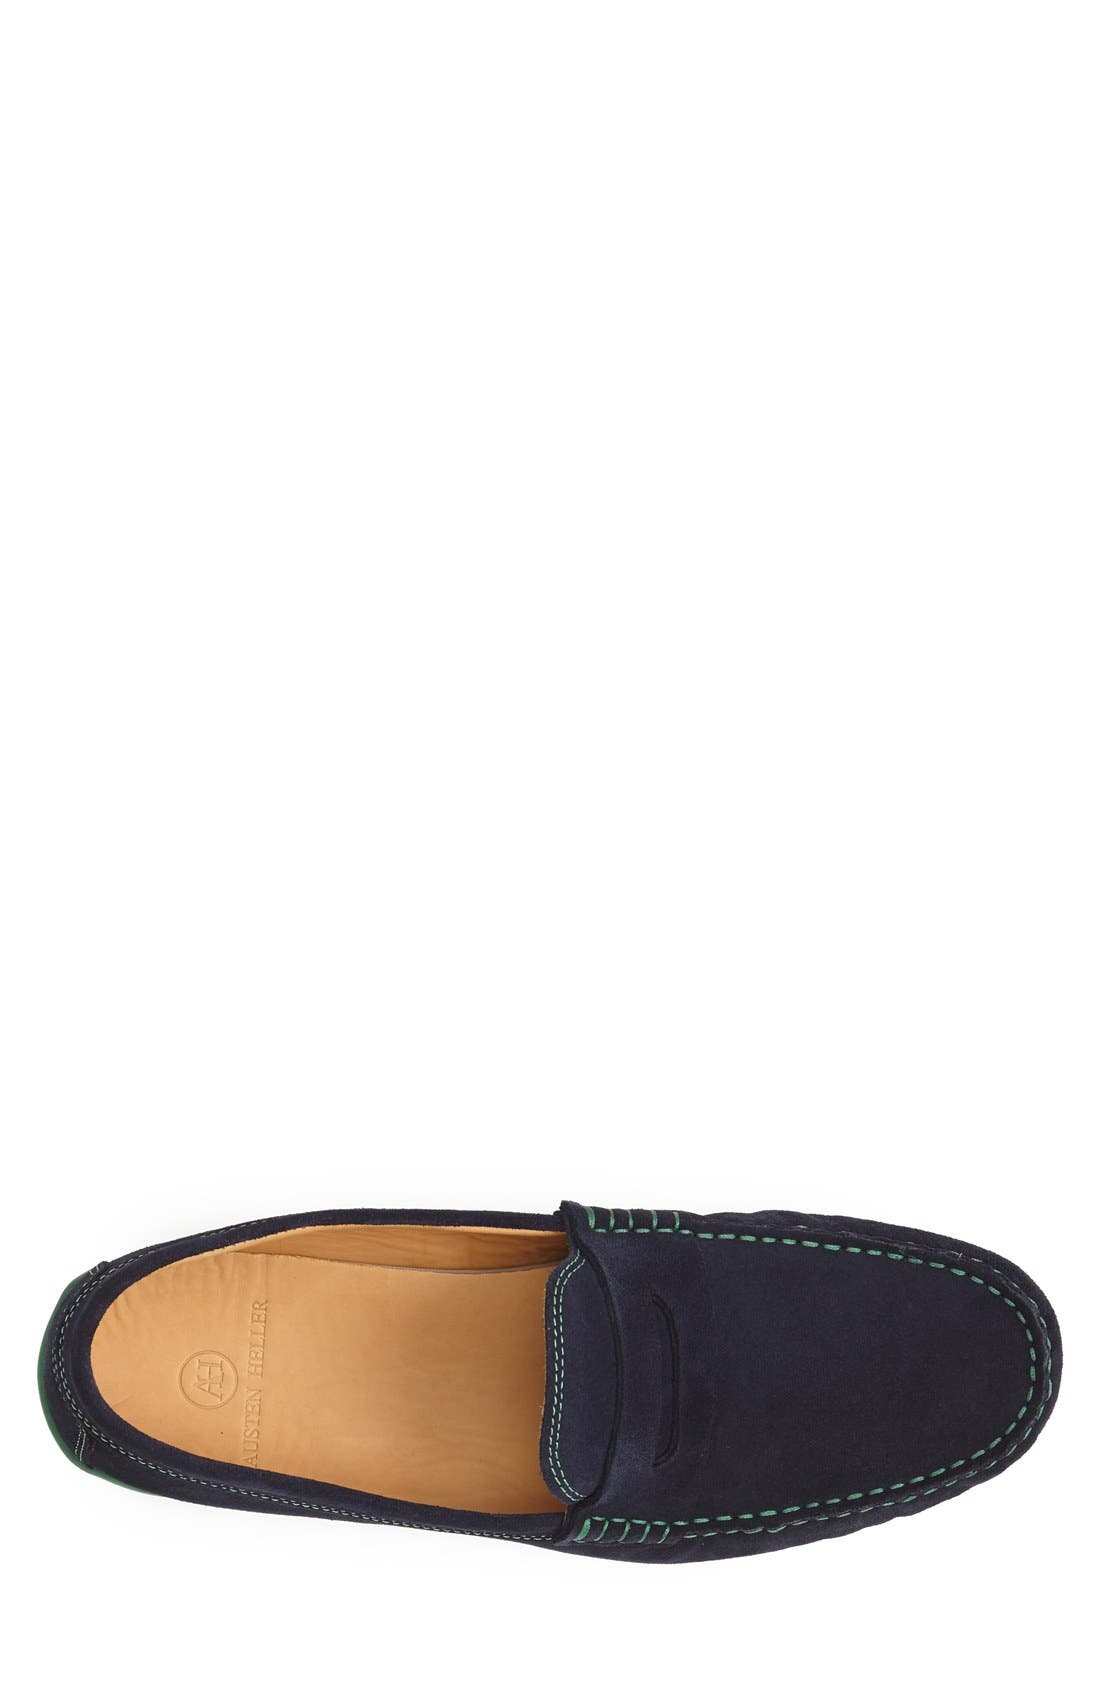 'Chathams' Penny Loafer,                             Alternate thumbnail 3, color,                             Navy Suede/ Green